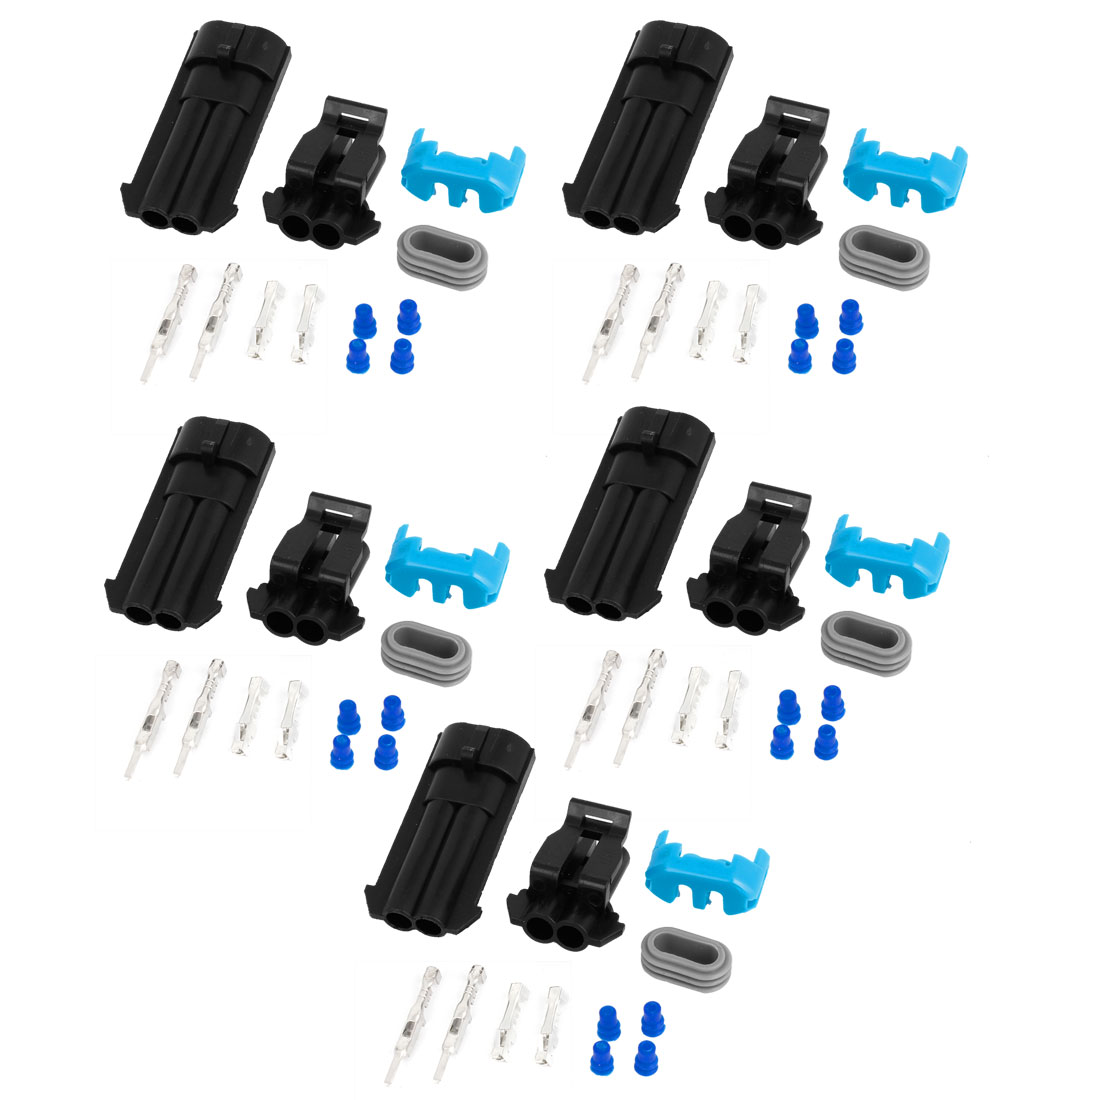 5 Set 2 Positions Waterproof Wire Connectors Sockets for Car Auto Stereo